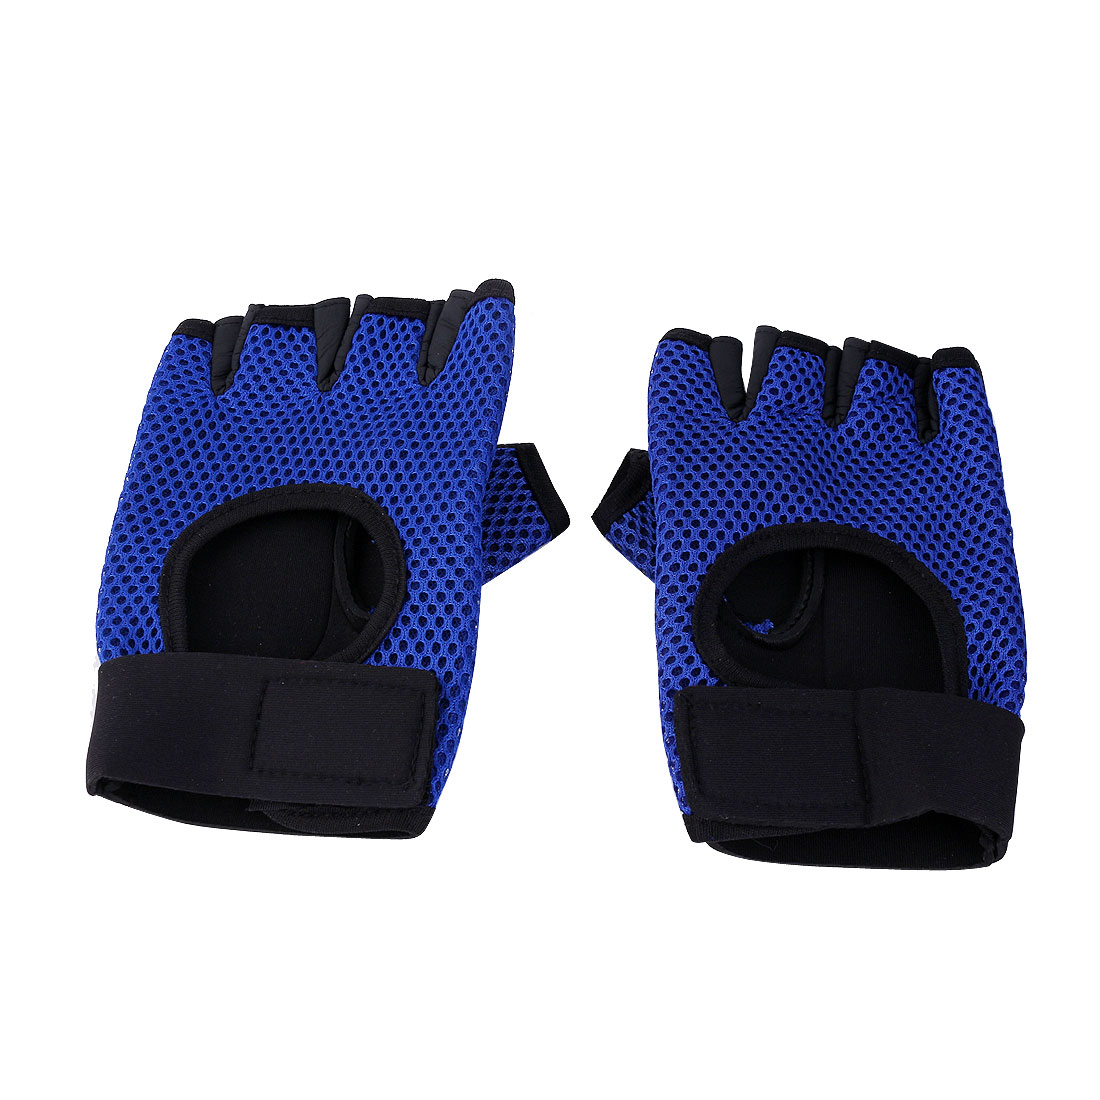 Outdoor Sports Nylon Elastic Half Finger Gloves Blue Pair for Cycling Climbing